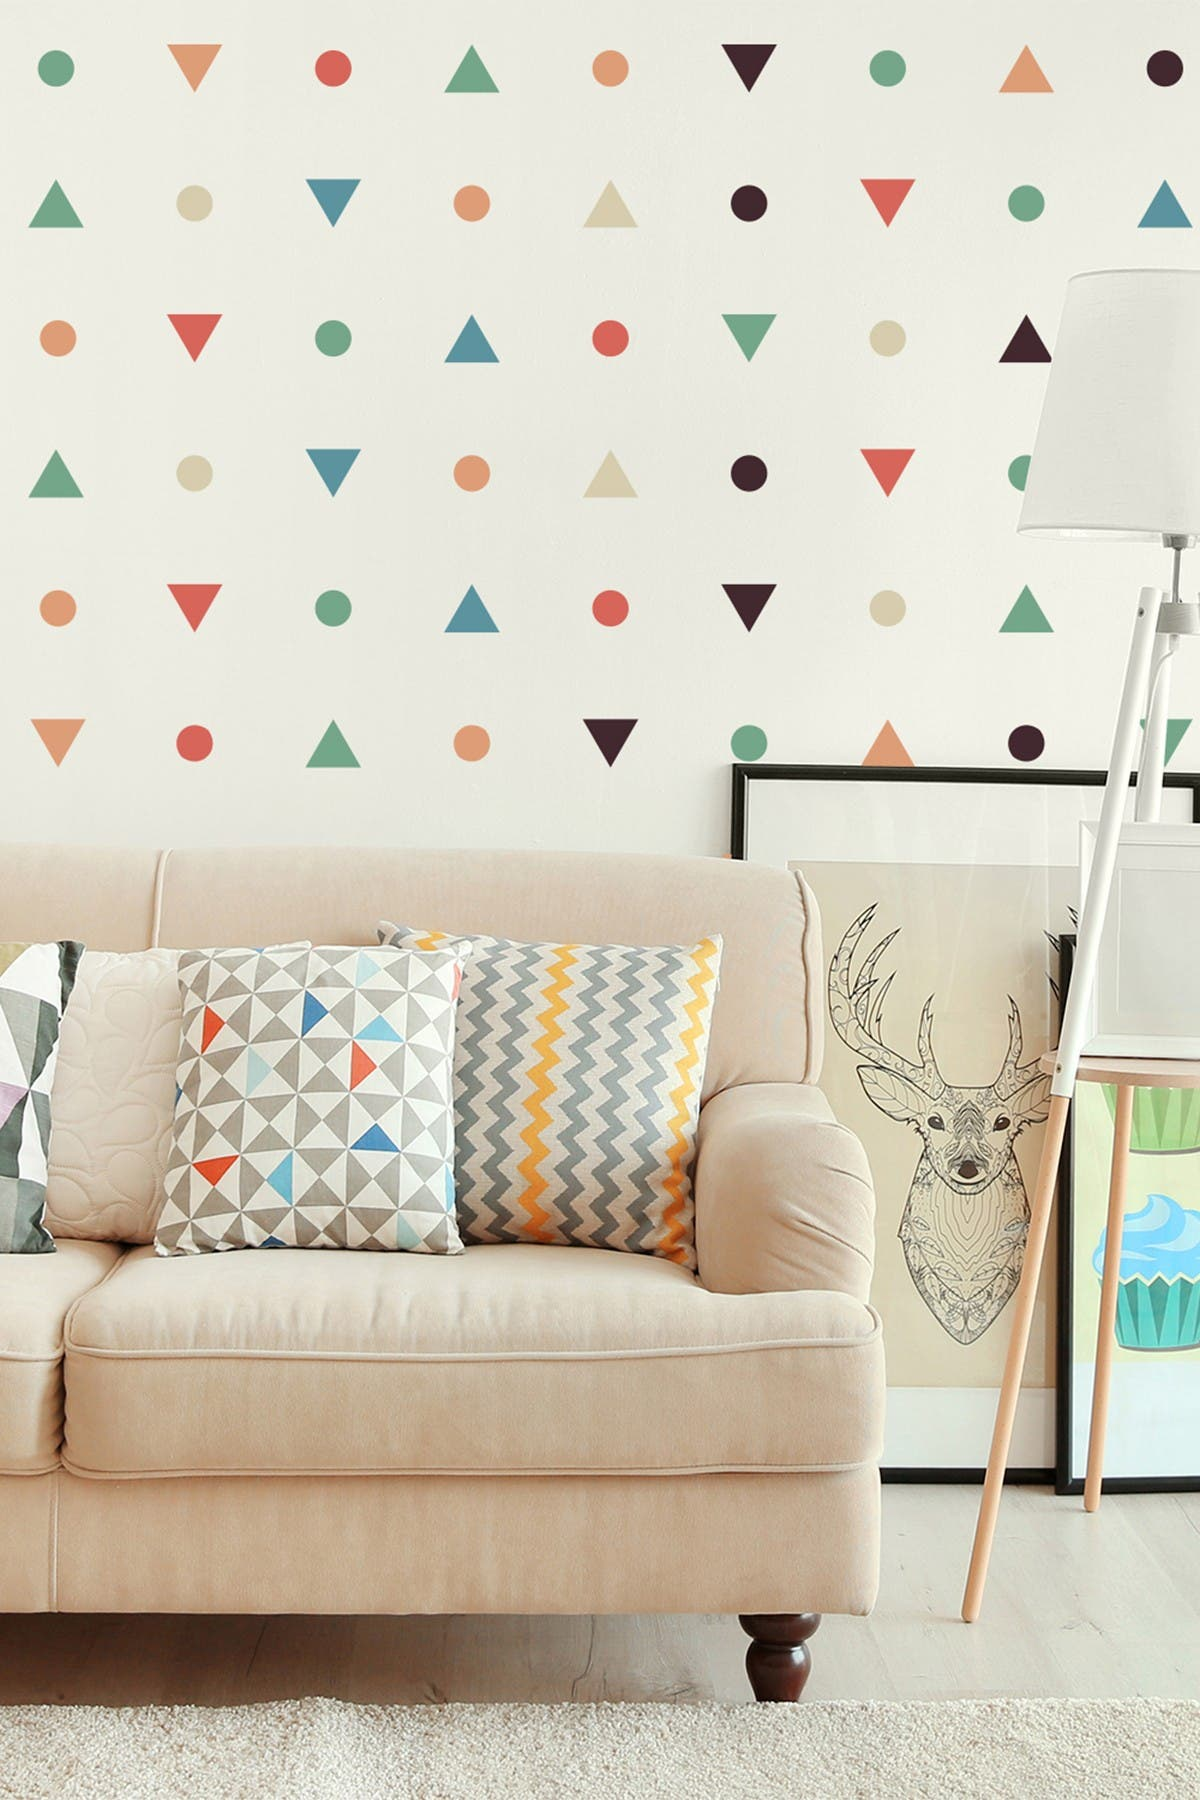 Image of WalPlus Flexi Mini Stickers Minimal Shapes Wall Stickers